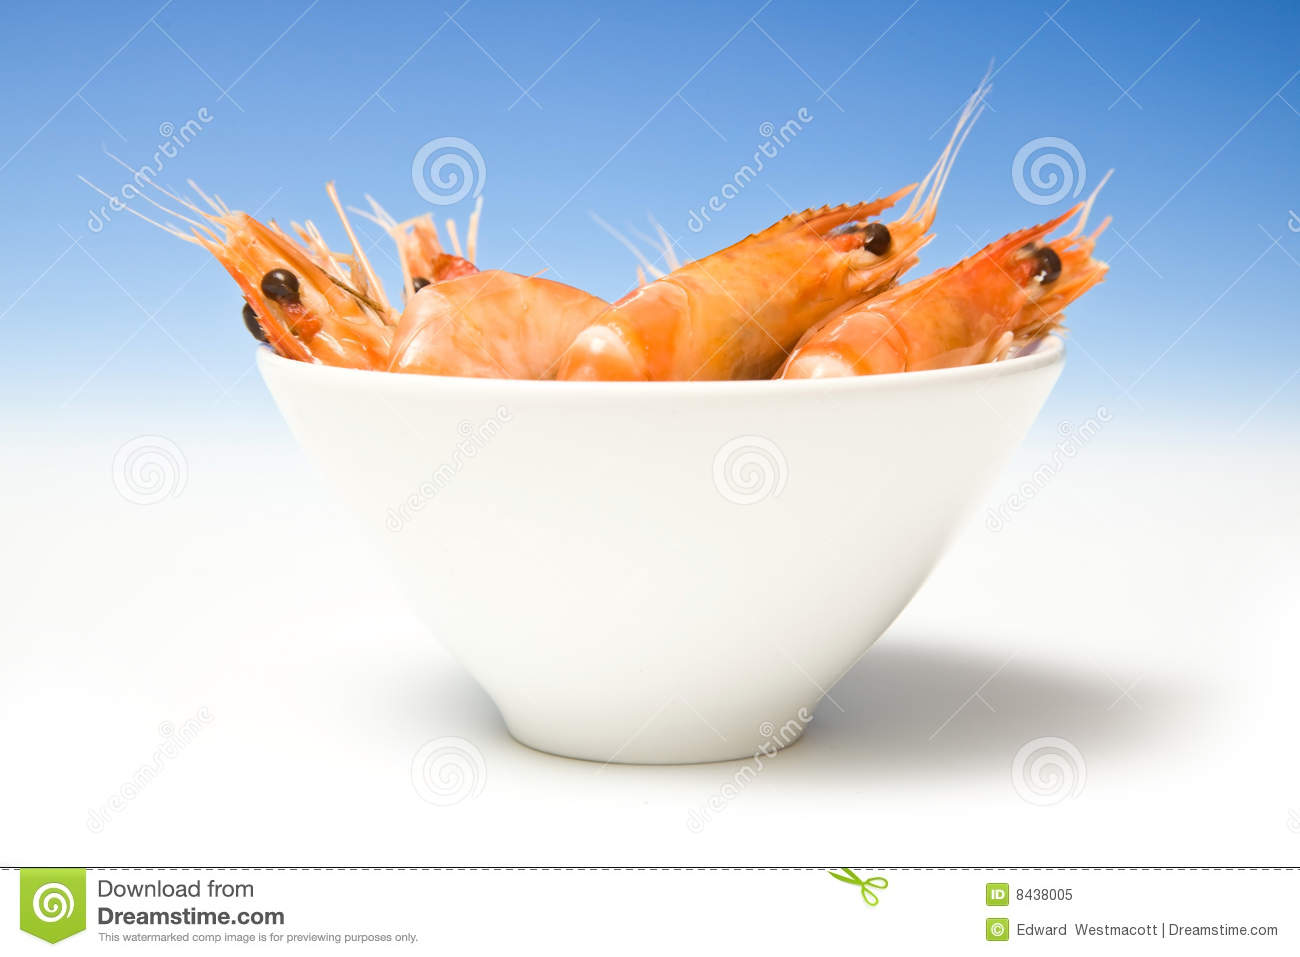 Bowl of cooked prawns